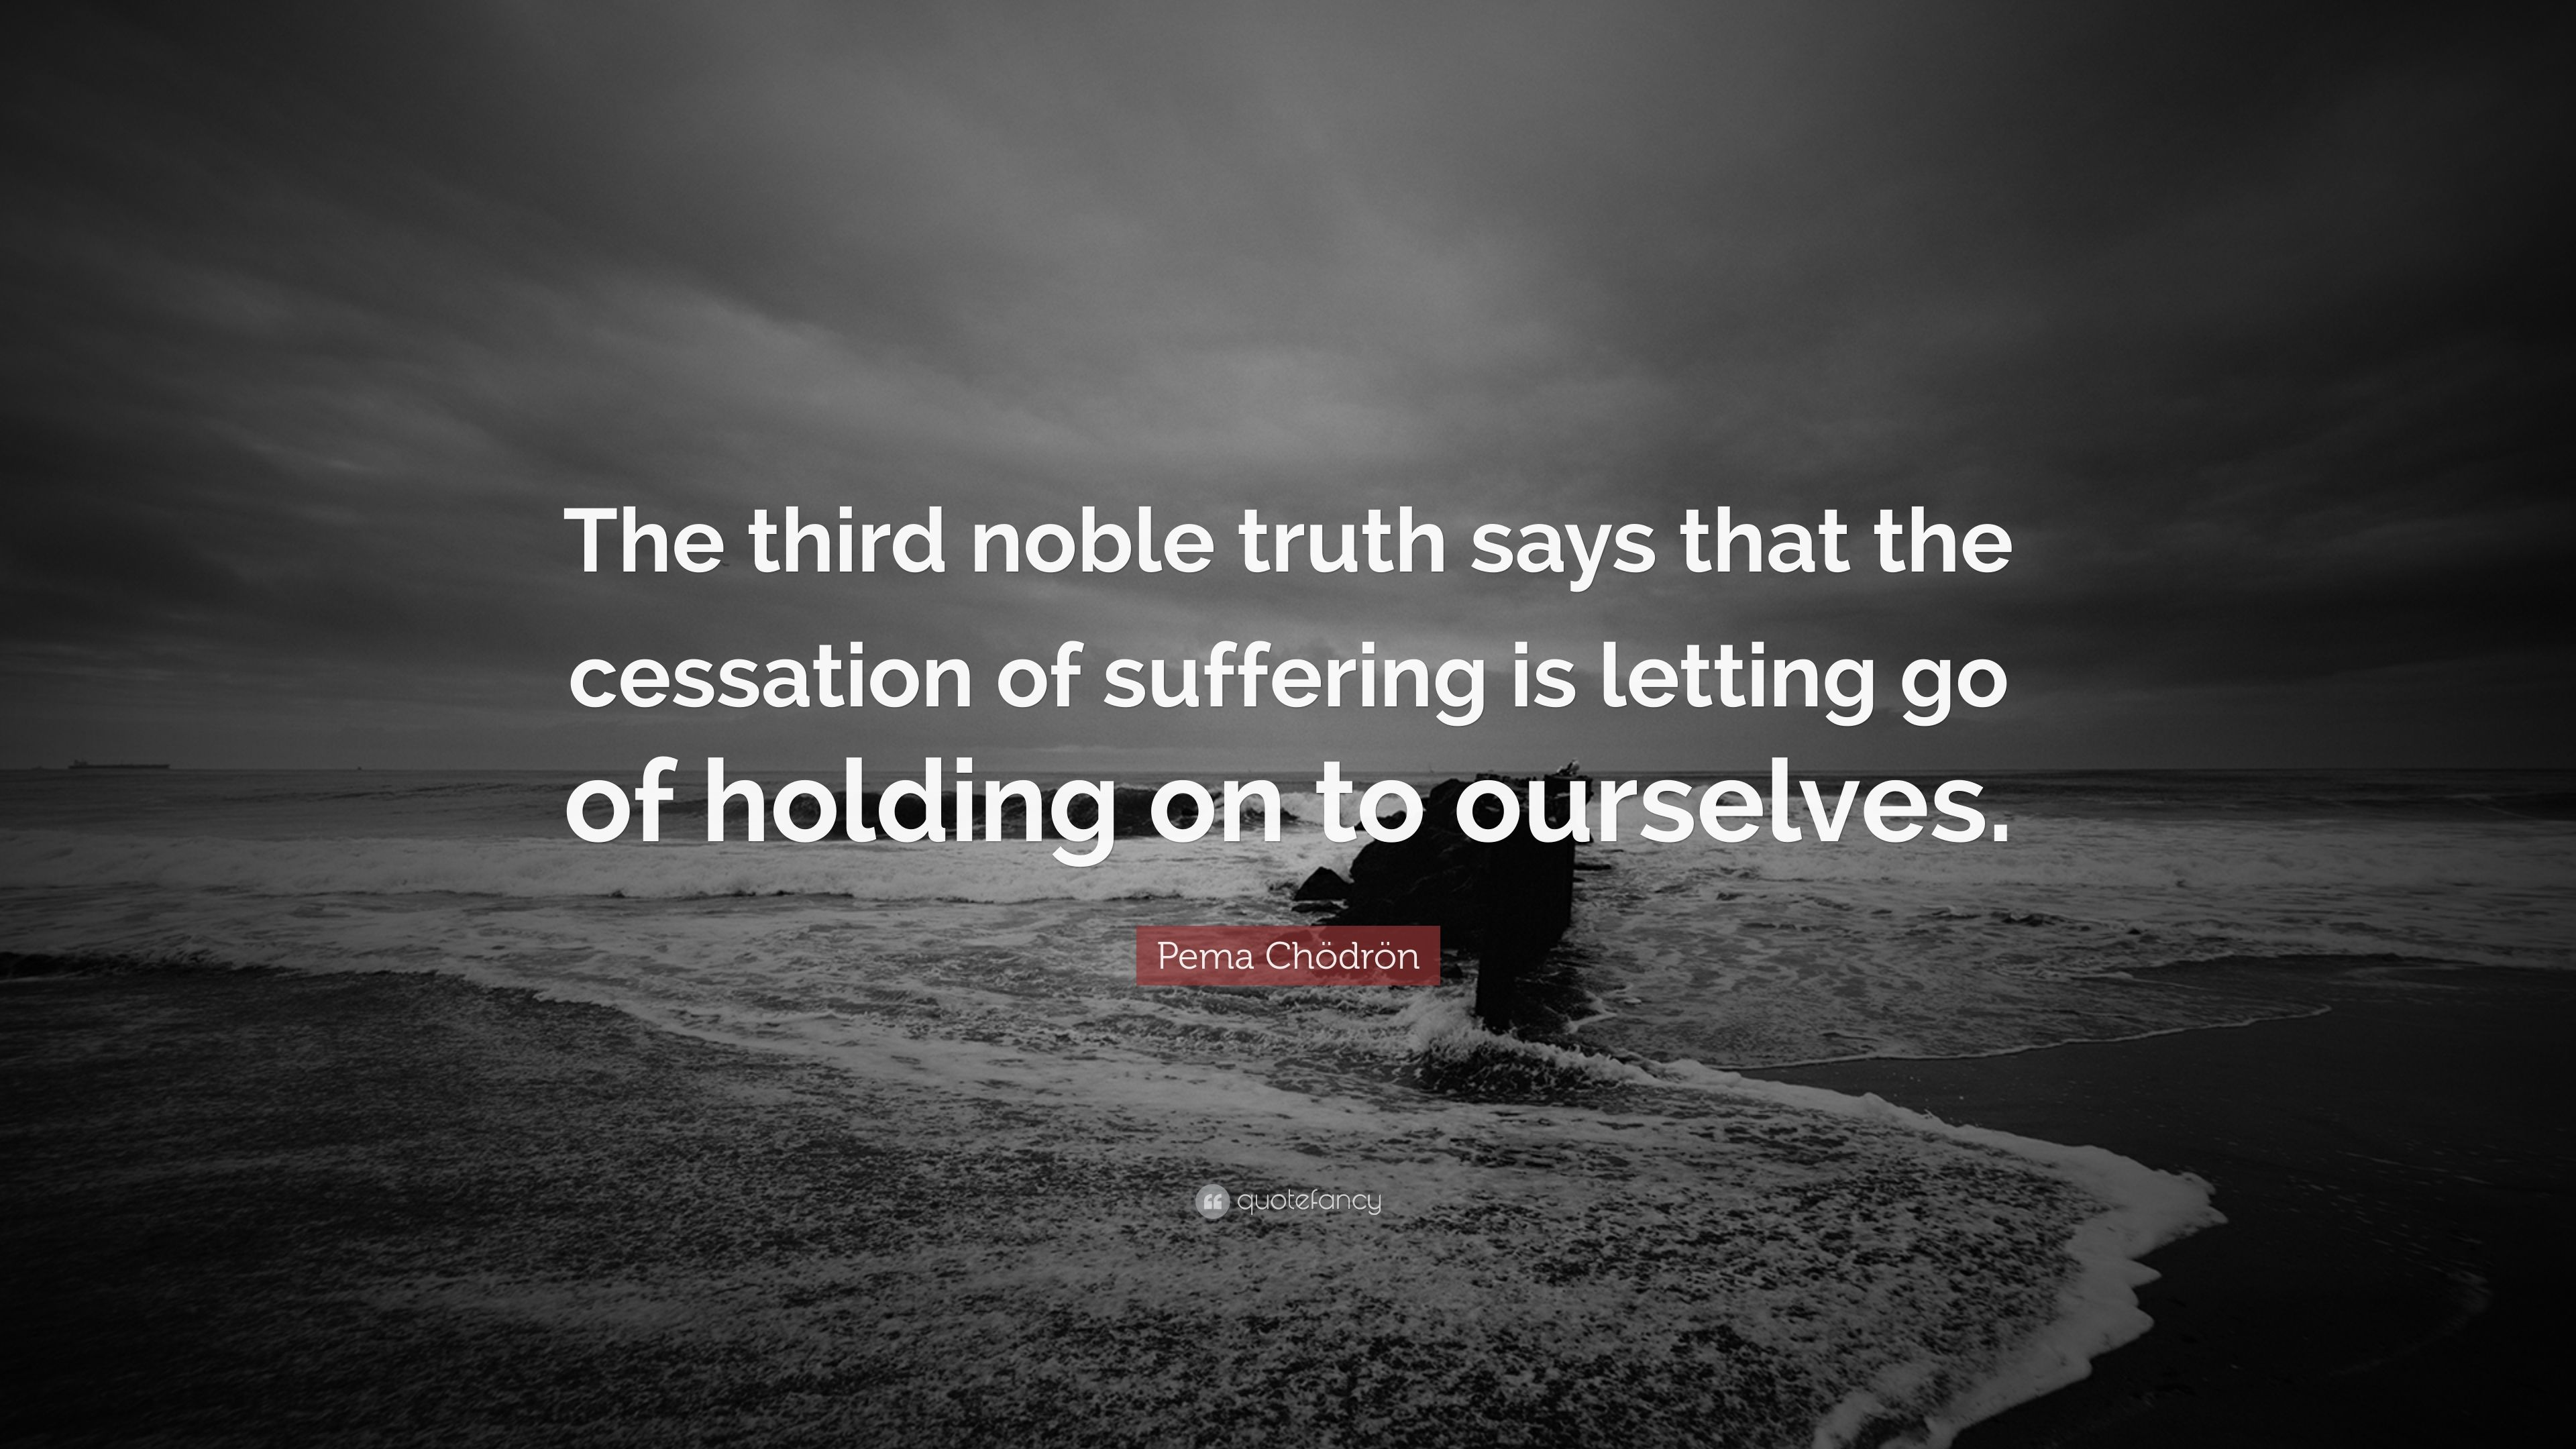 example of third noble truth